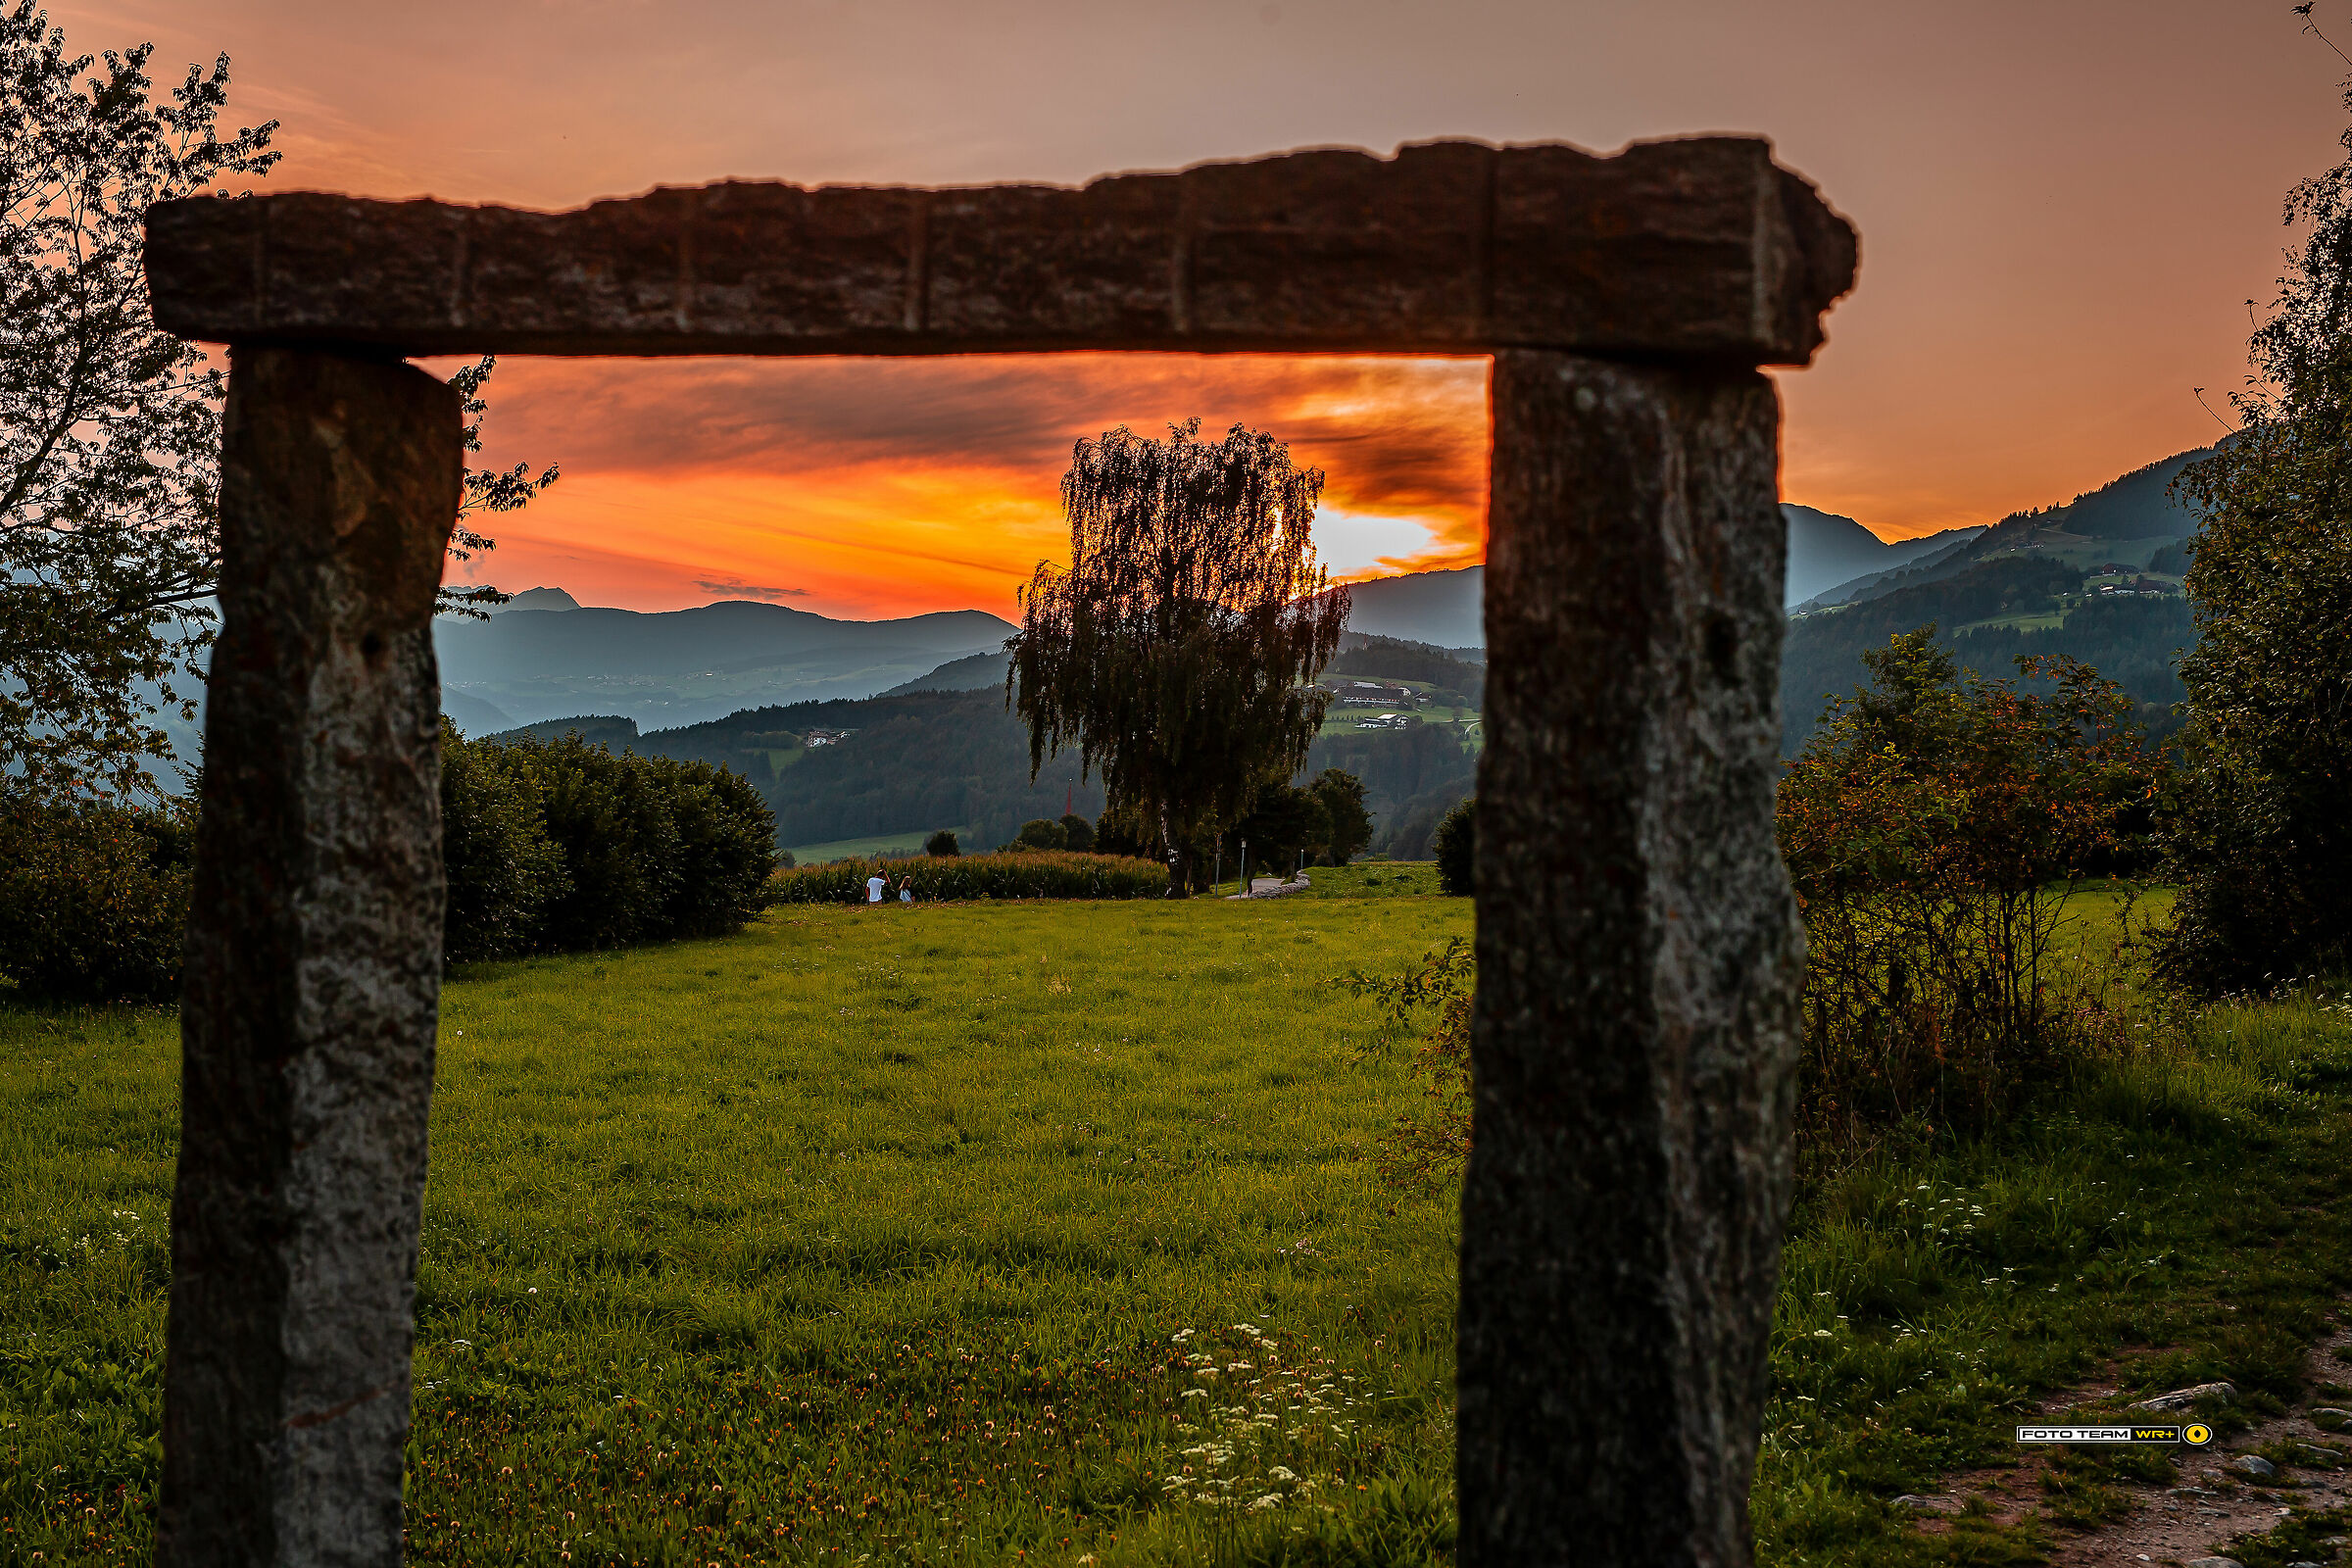 Sunset at Falzes (South Tyrol)...